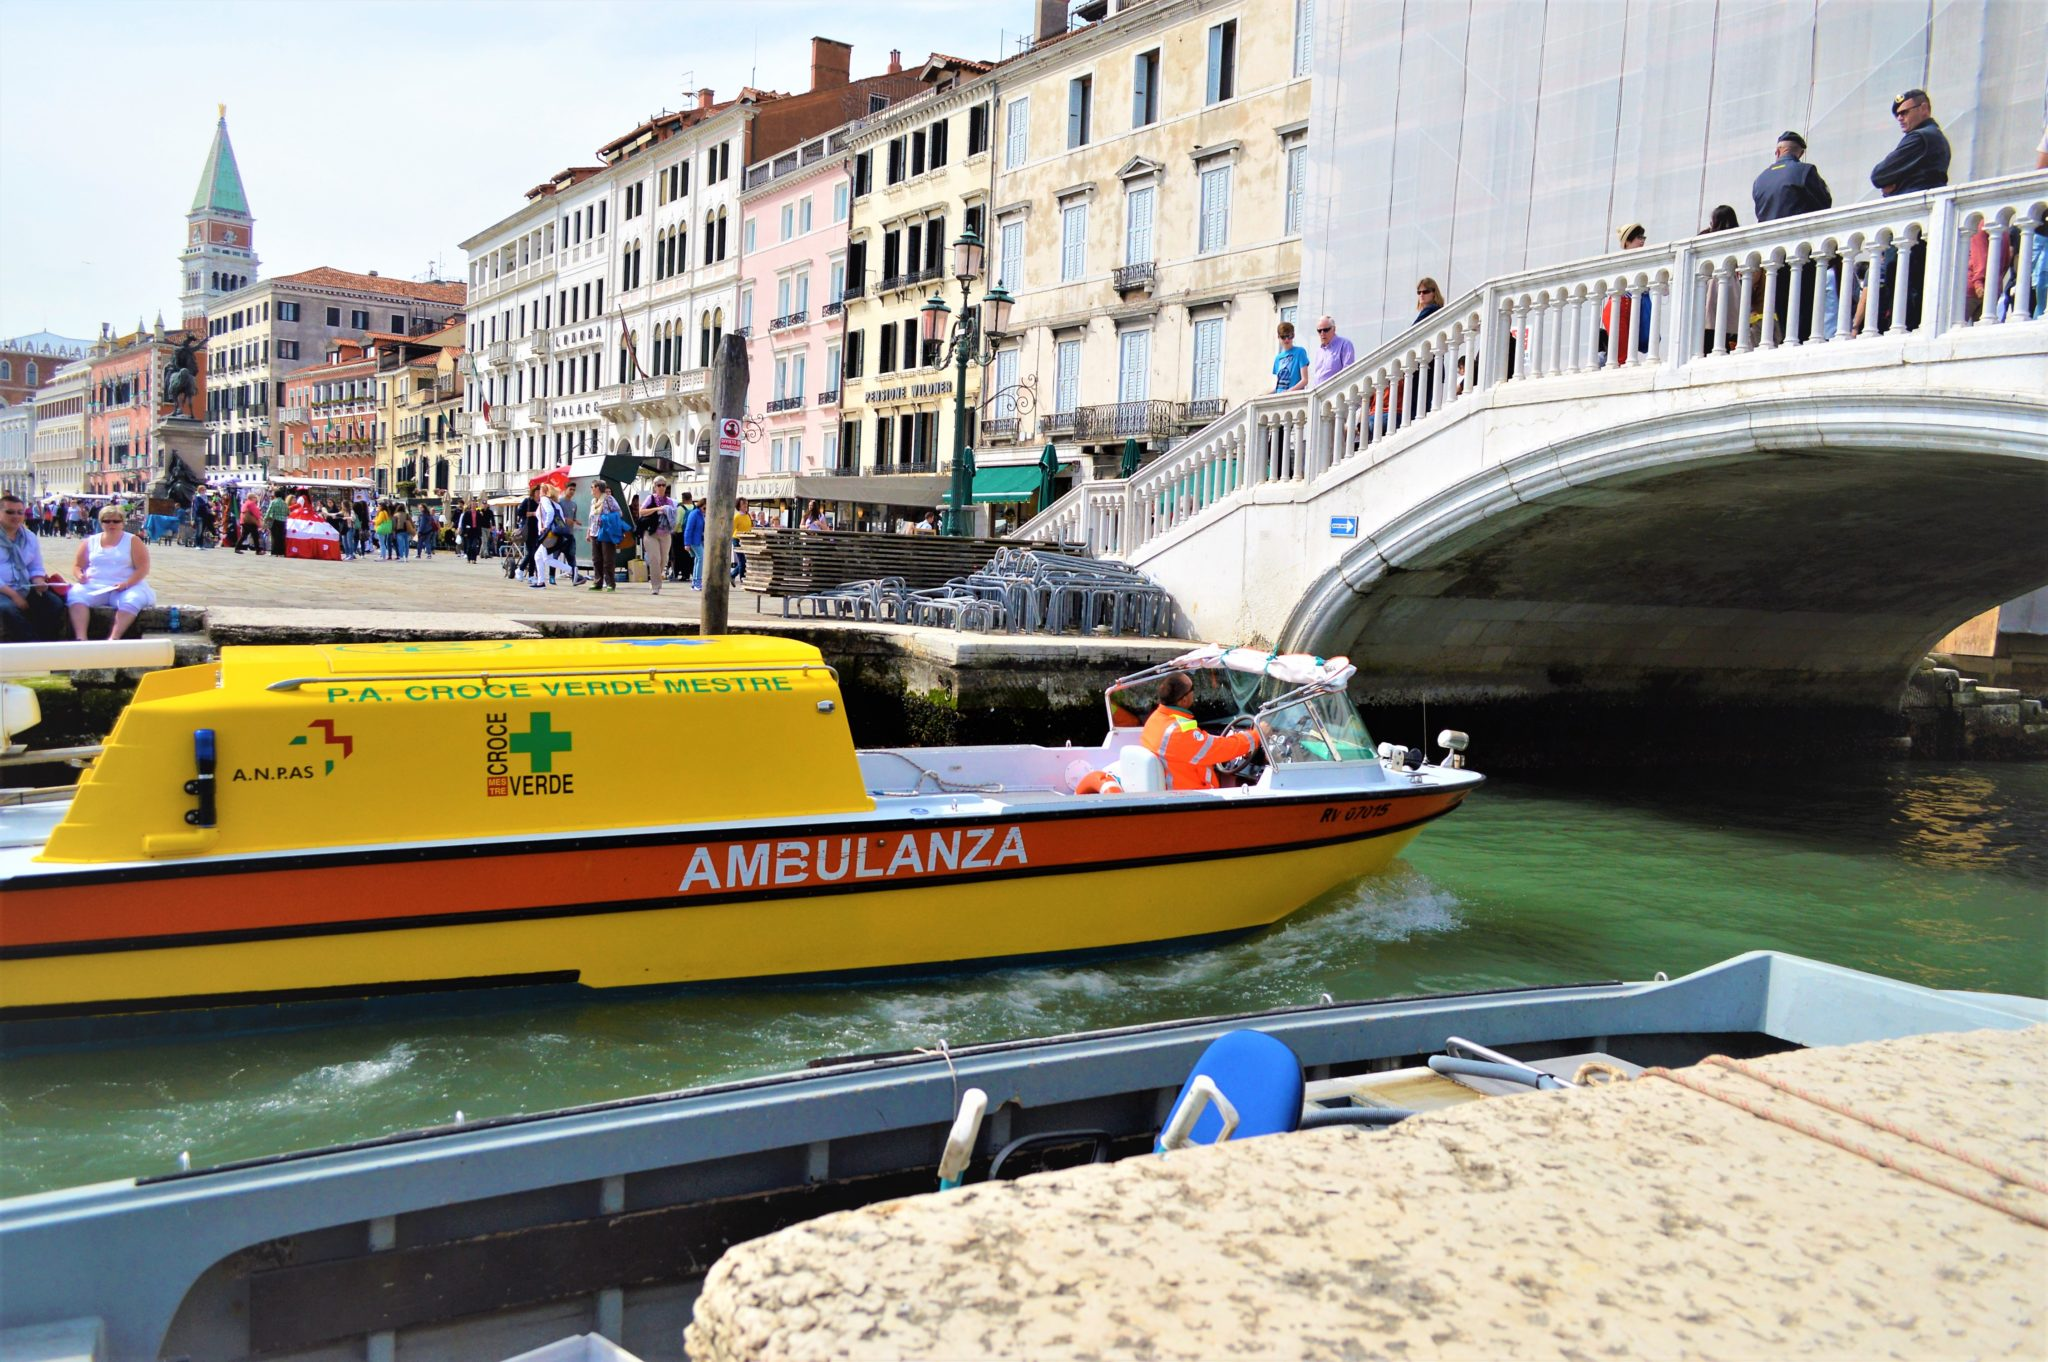 Ambulance in Venice, Italy